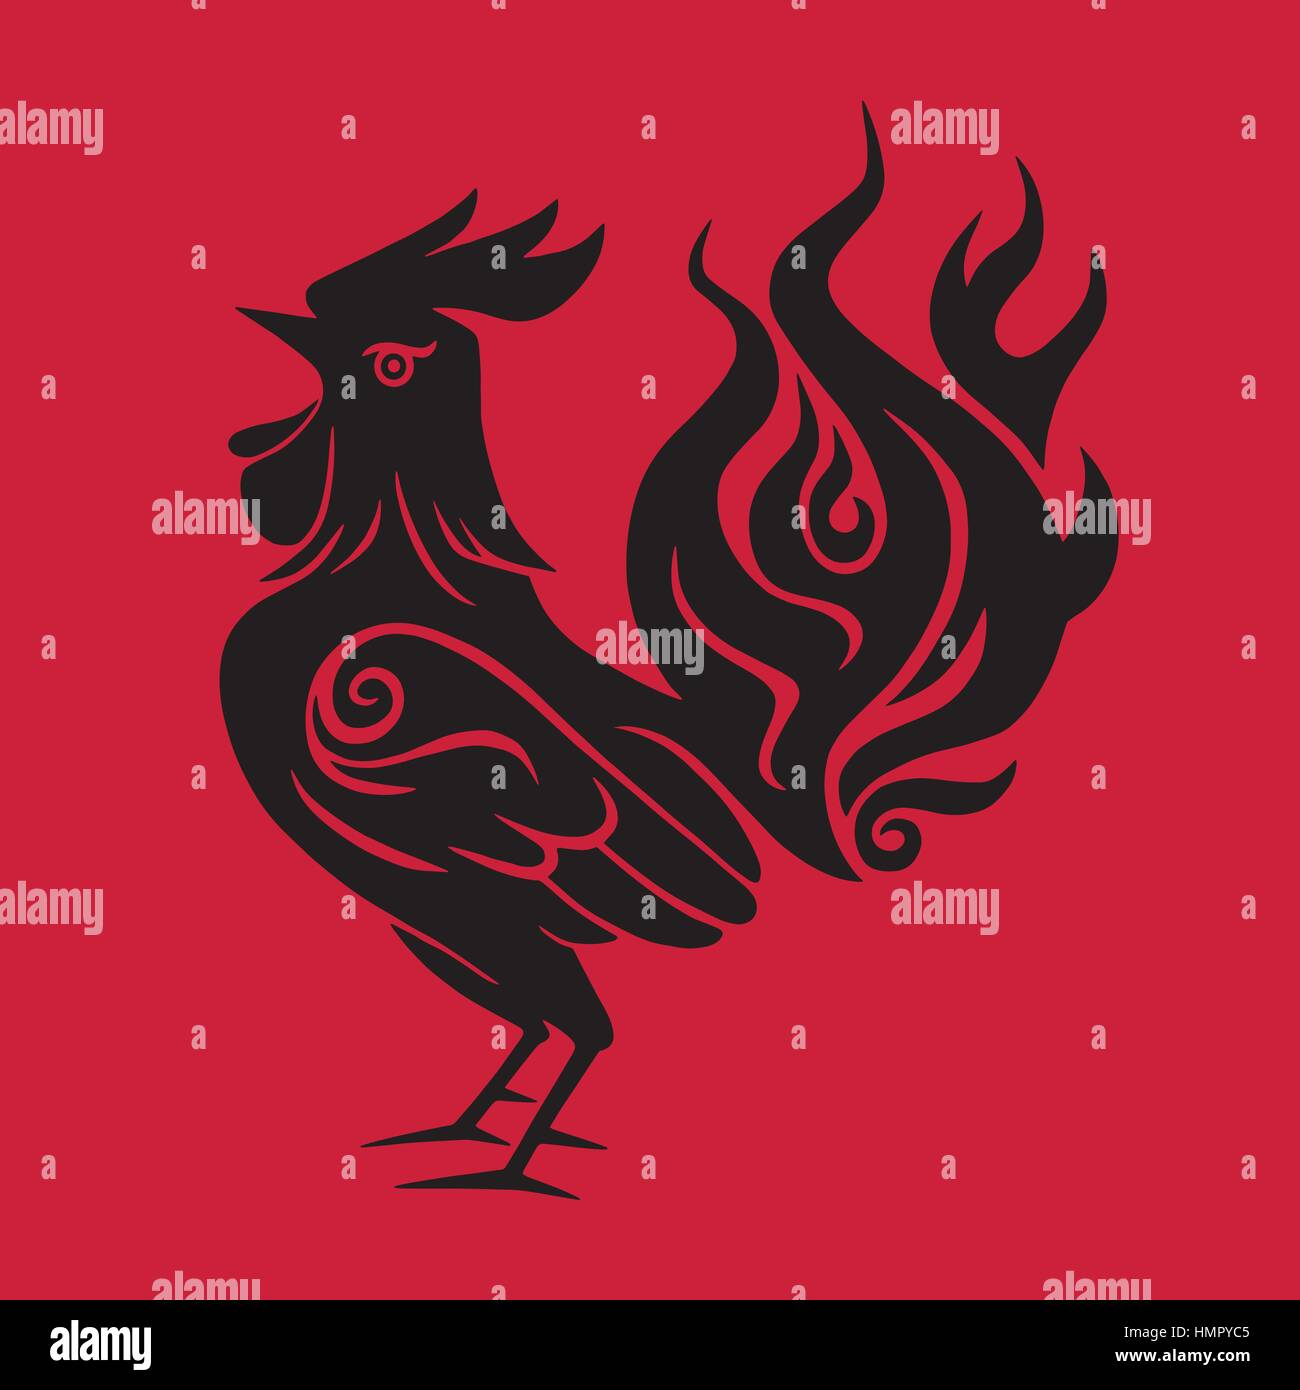 Fire rooster chinese new year black symbol 2017 red background fire rooster chinese new year black symbol 2017 red background biocorpaavc